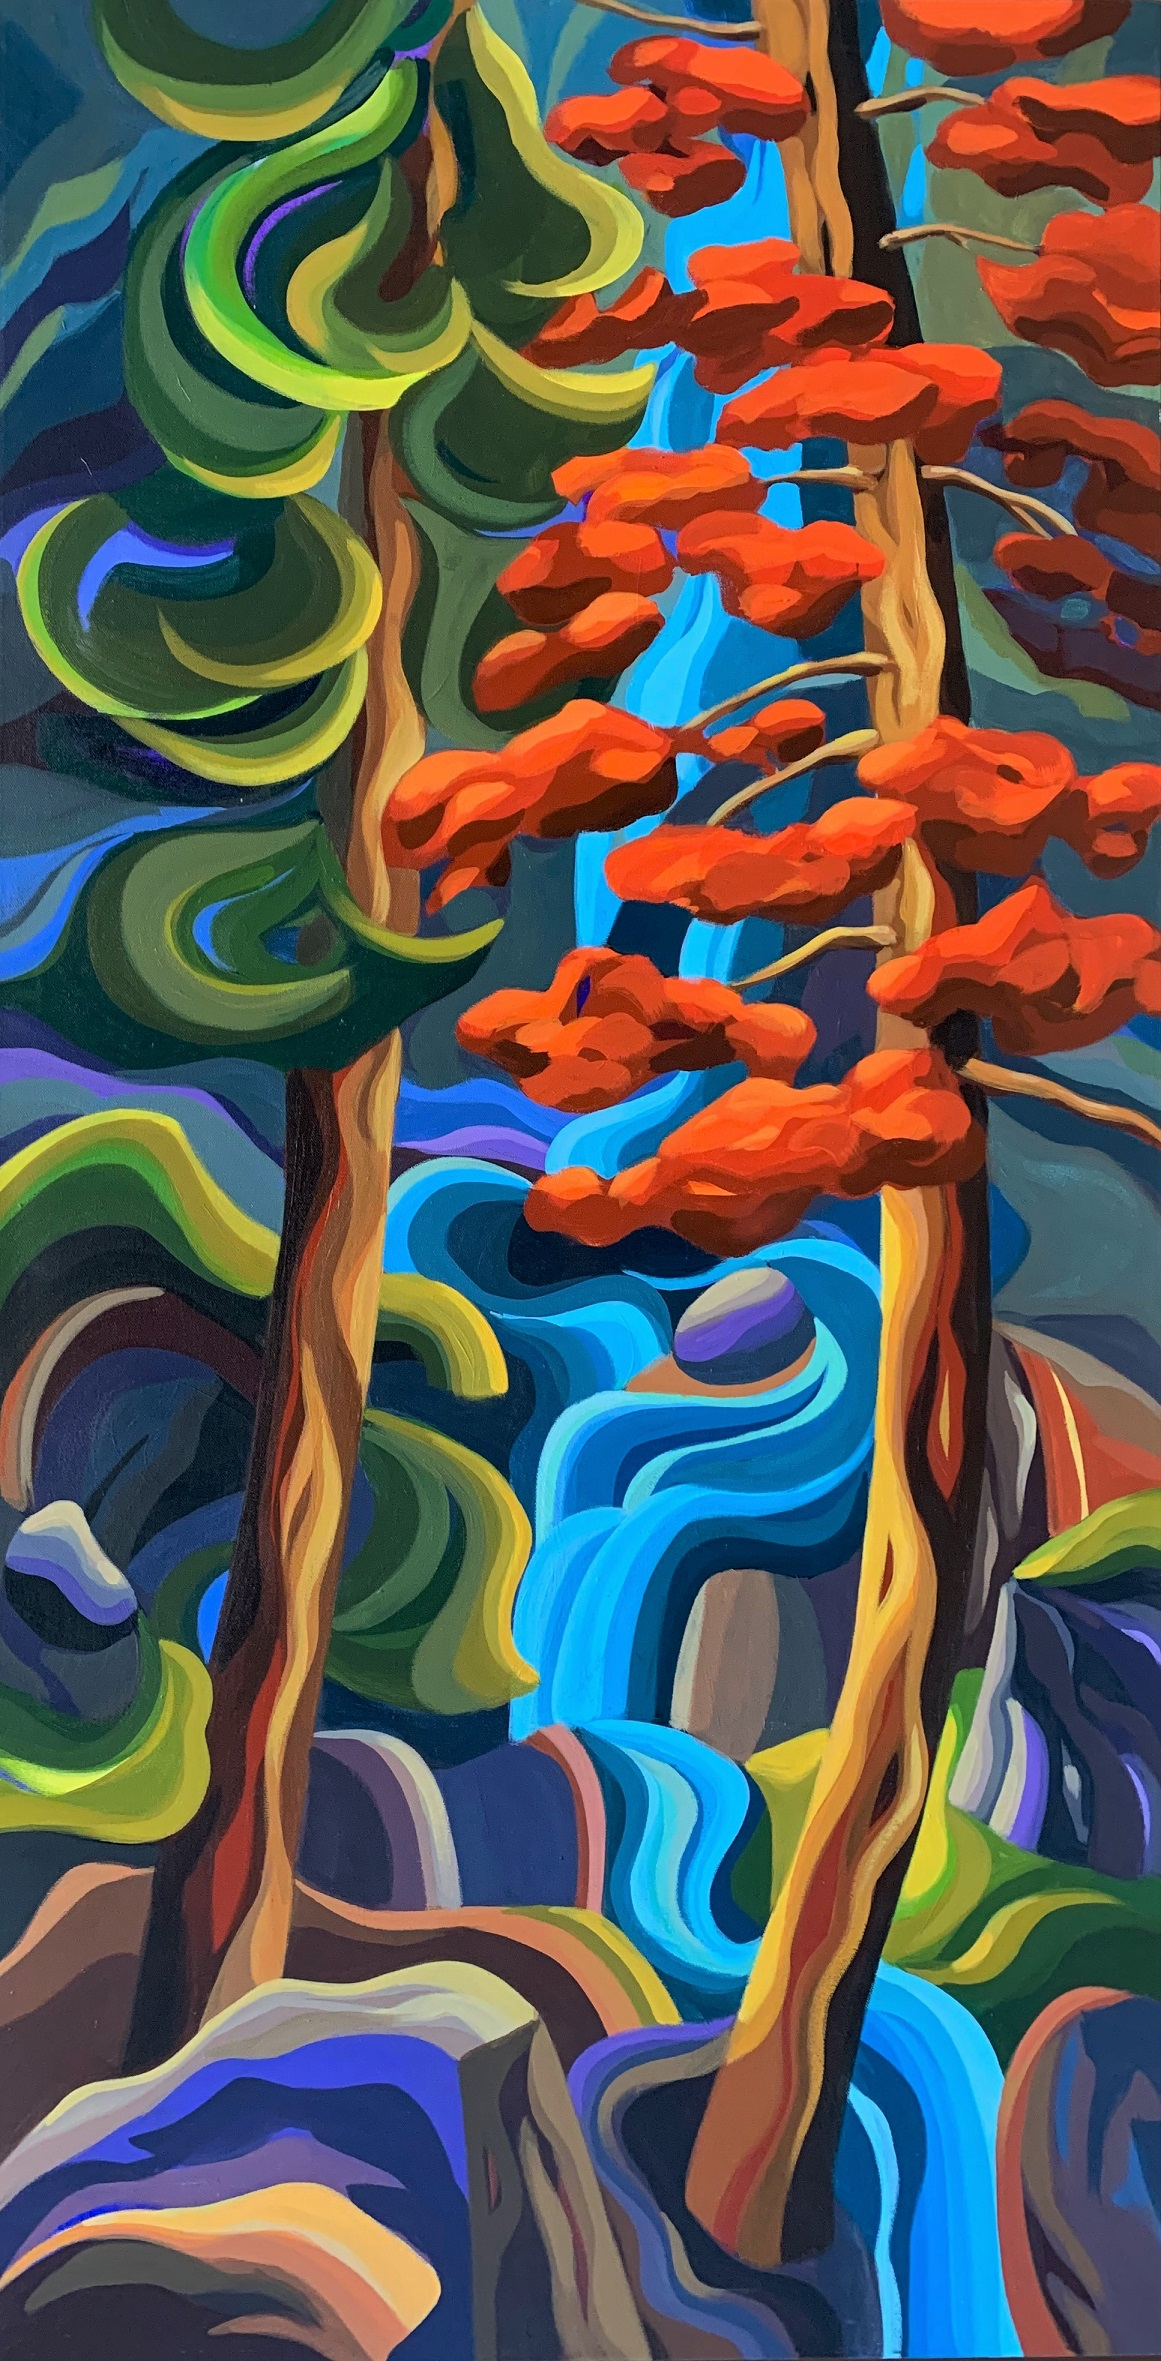 West Coast Autumn Two artwork by Jodie Blaney - art listed for sale on Artplode